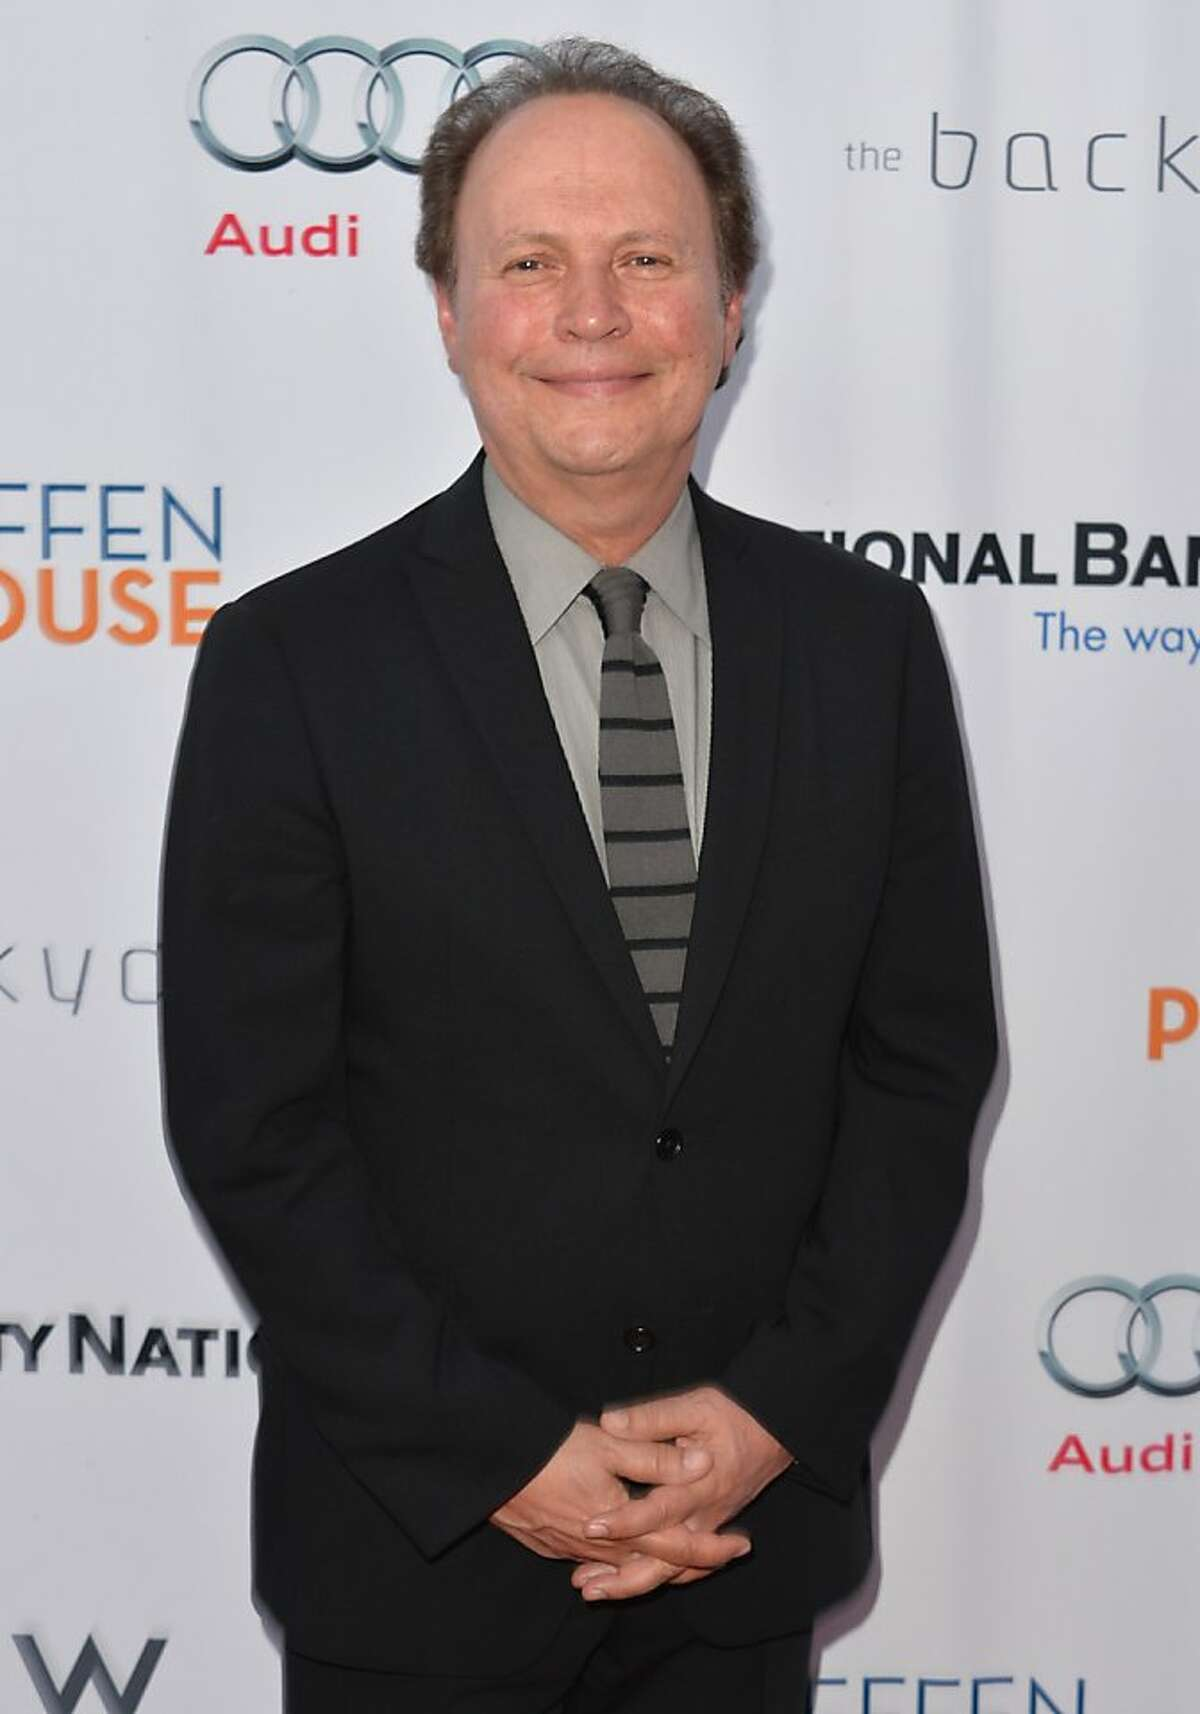 """LOS ANGELES, CA - MAY 13: Actor Billy Crystal arrives to The Geffen Playhouse's Annual """"Backstage at the Geffen"""" Gala at Geffen Playhouse on May 13, 2013 in Los Angeles, California. (Photo by Alberto E. Rodriguez/Getty Images)"""